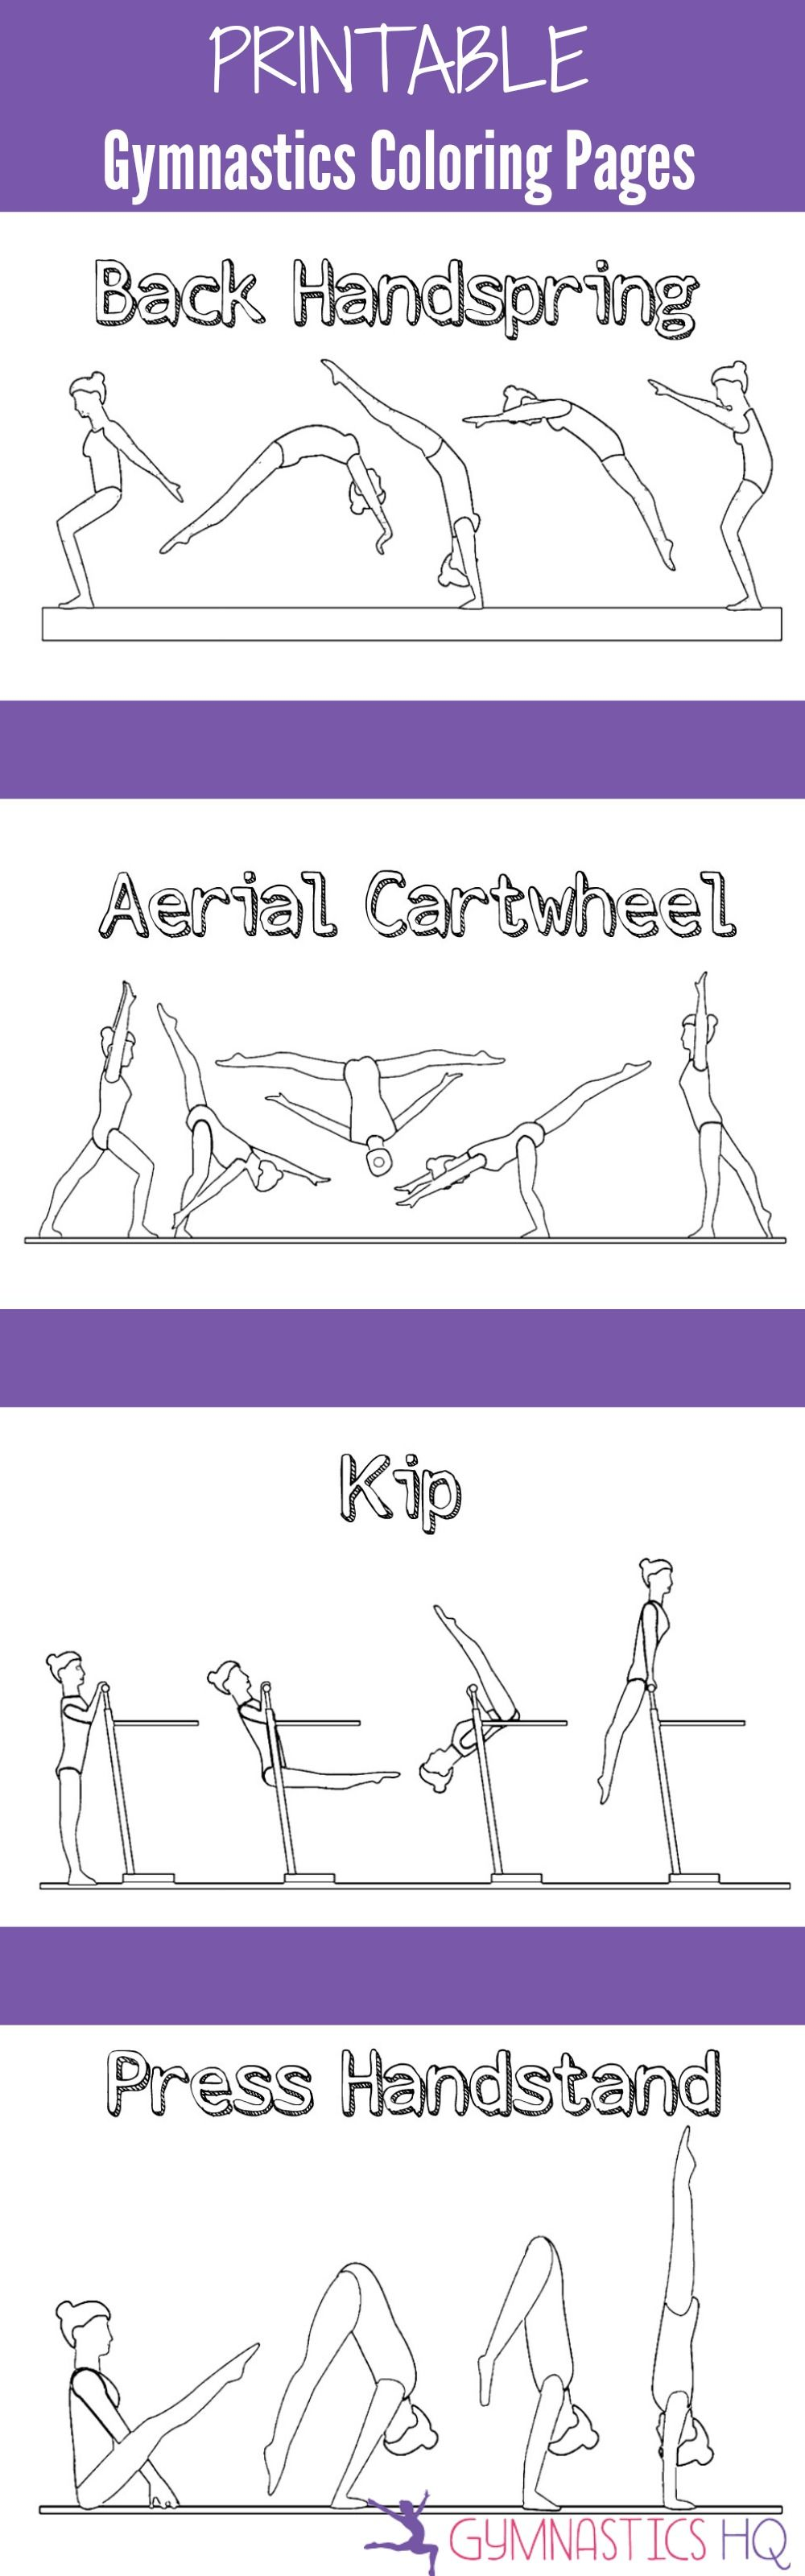 Printable Gymnastics Coloring Pages-- 5 pages of gymnastics skills ...